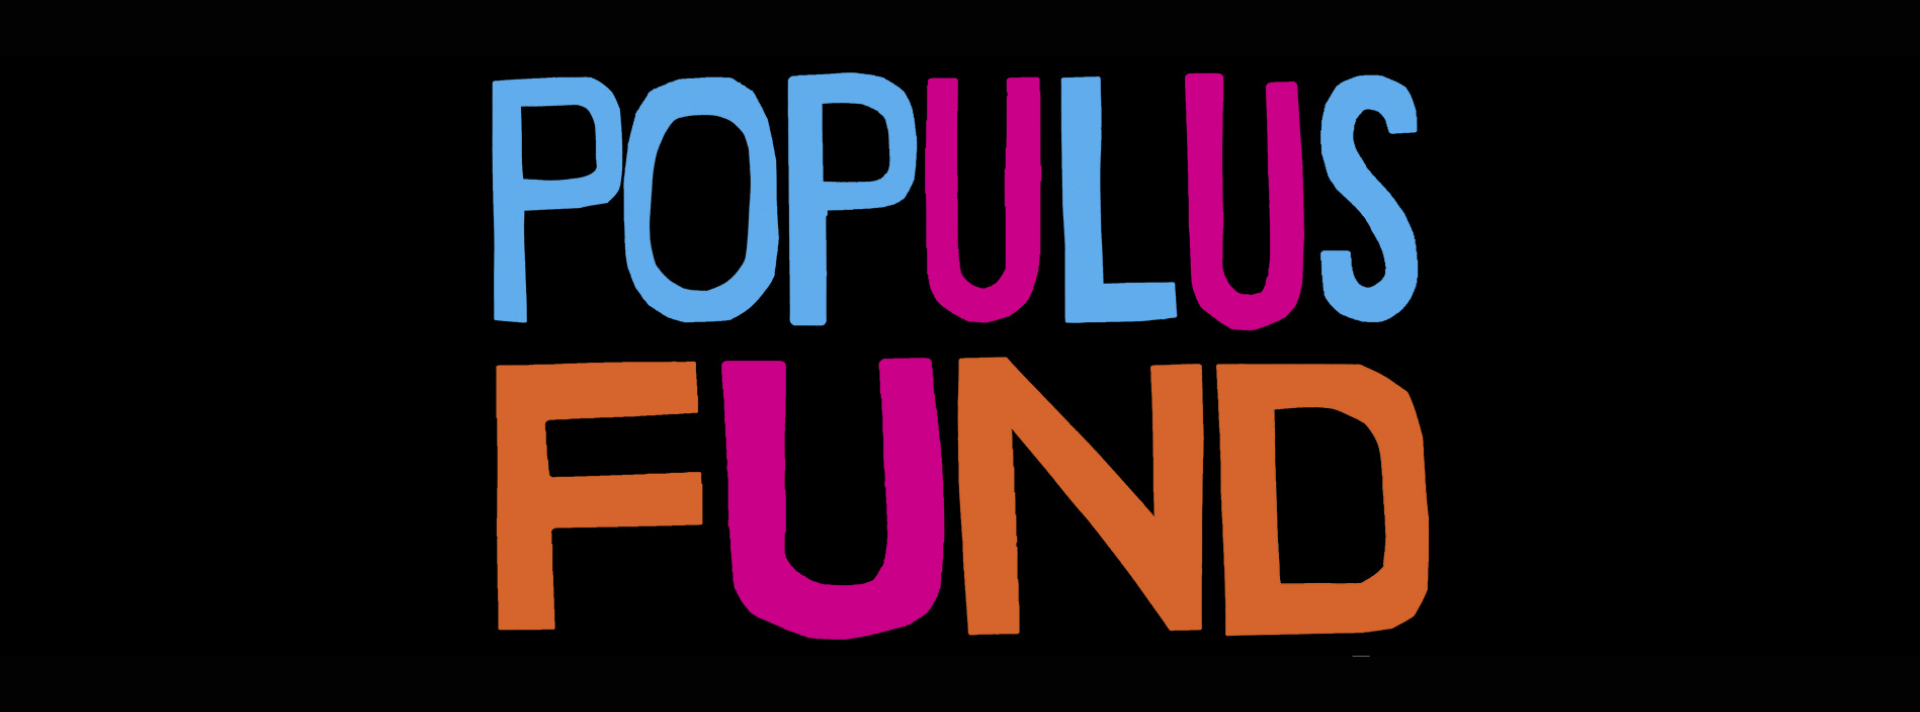 Populus Fund logo with the words in multi color letters against a black background